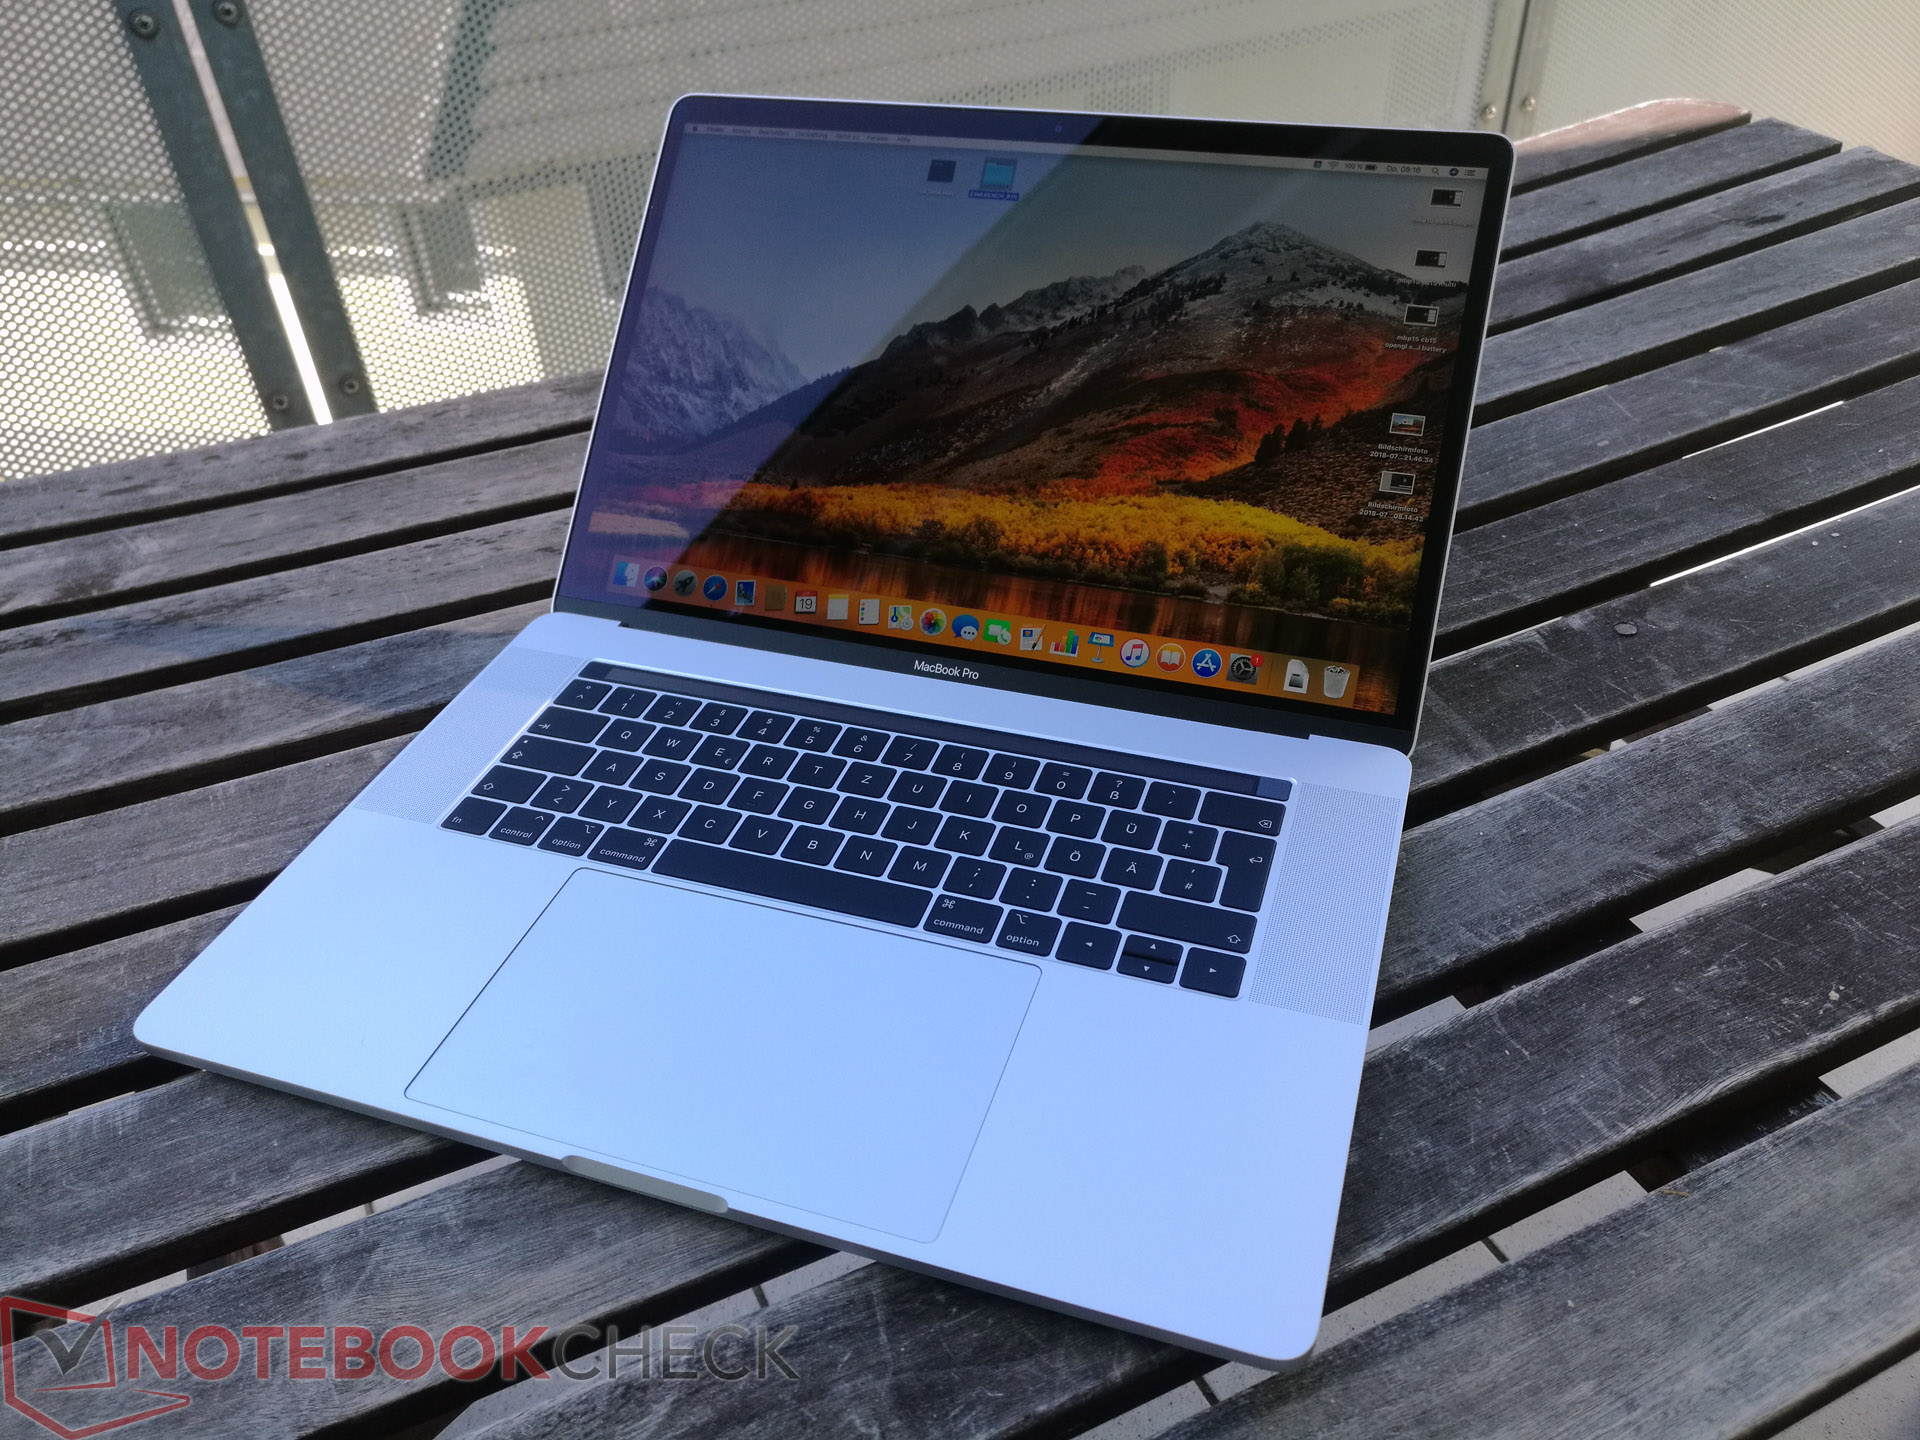 gta v macbook pro 2018